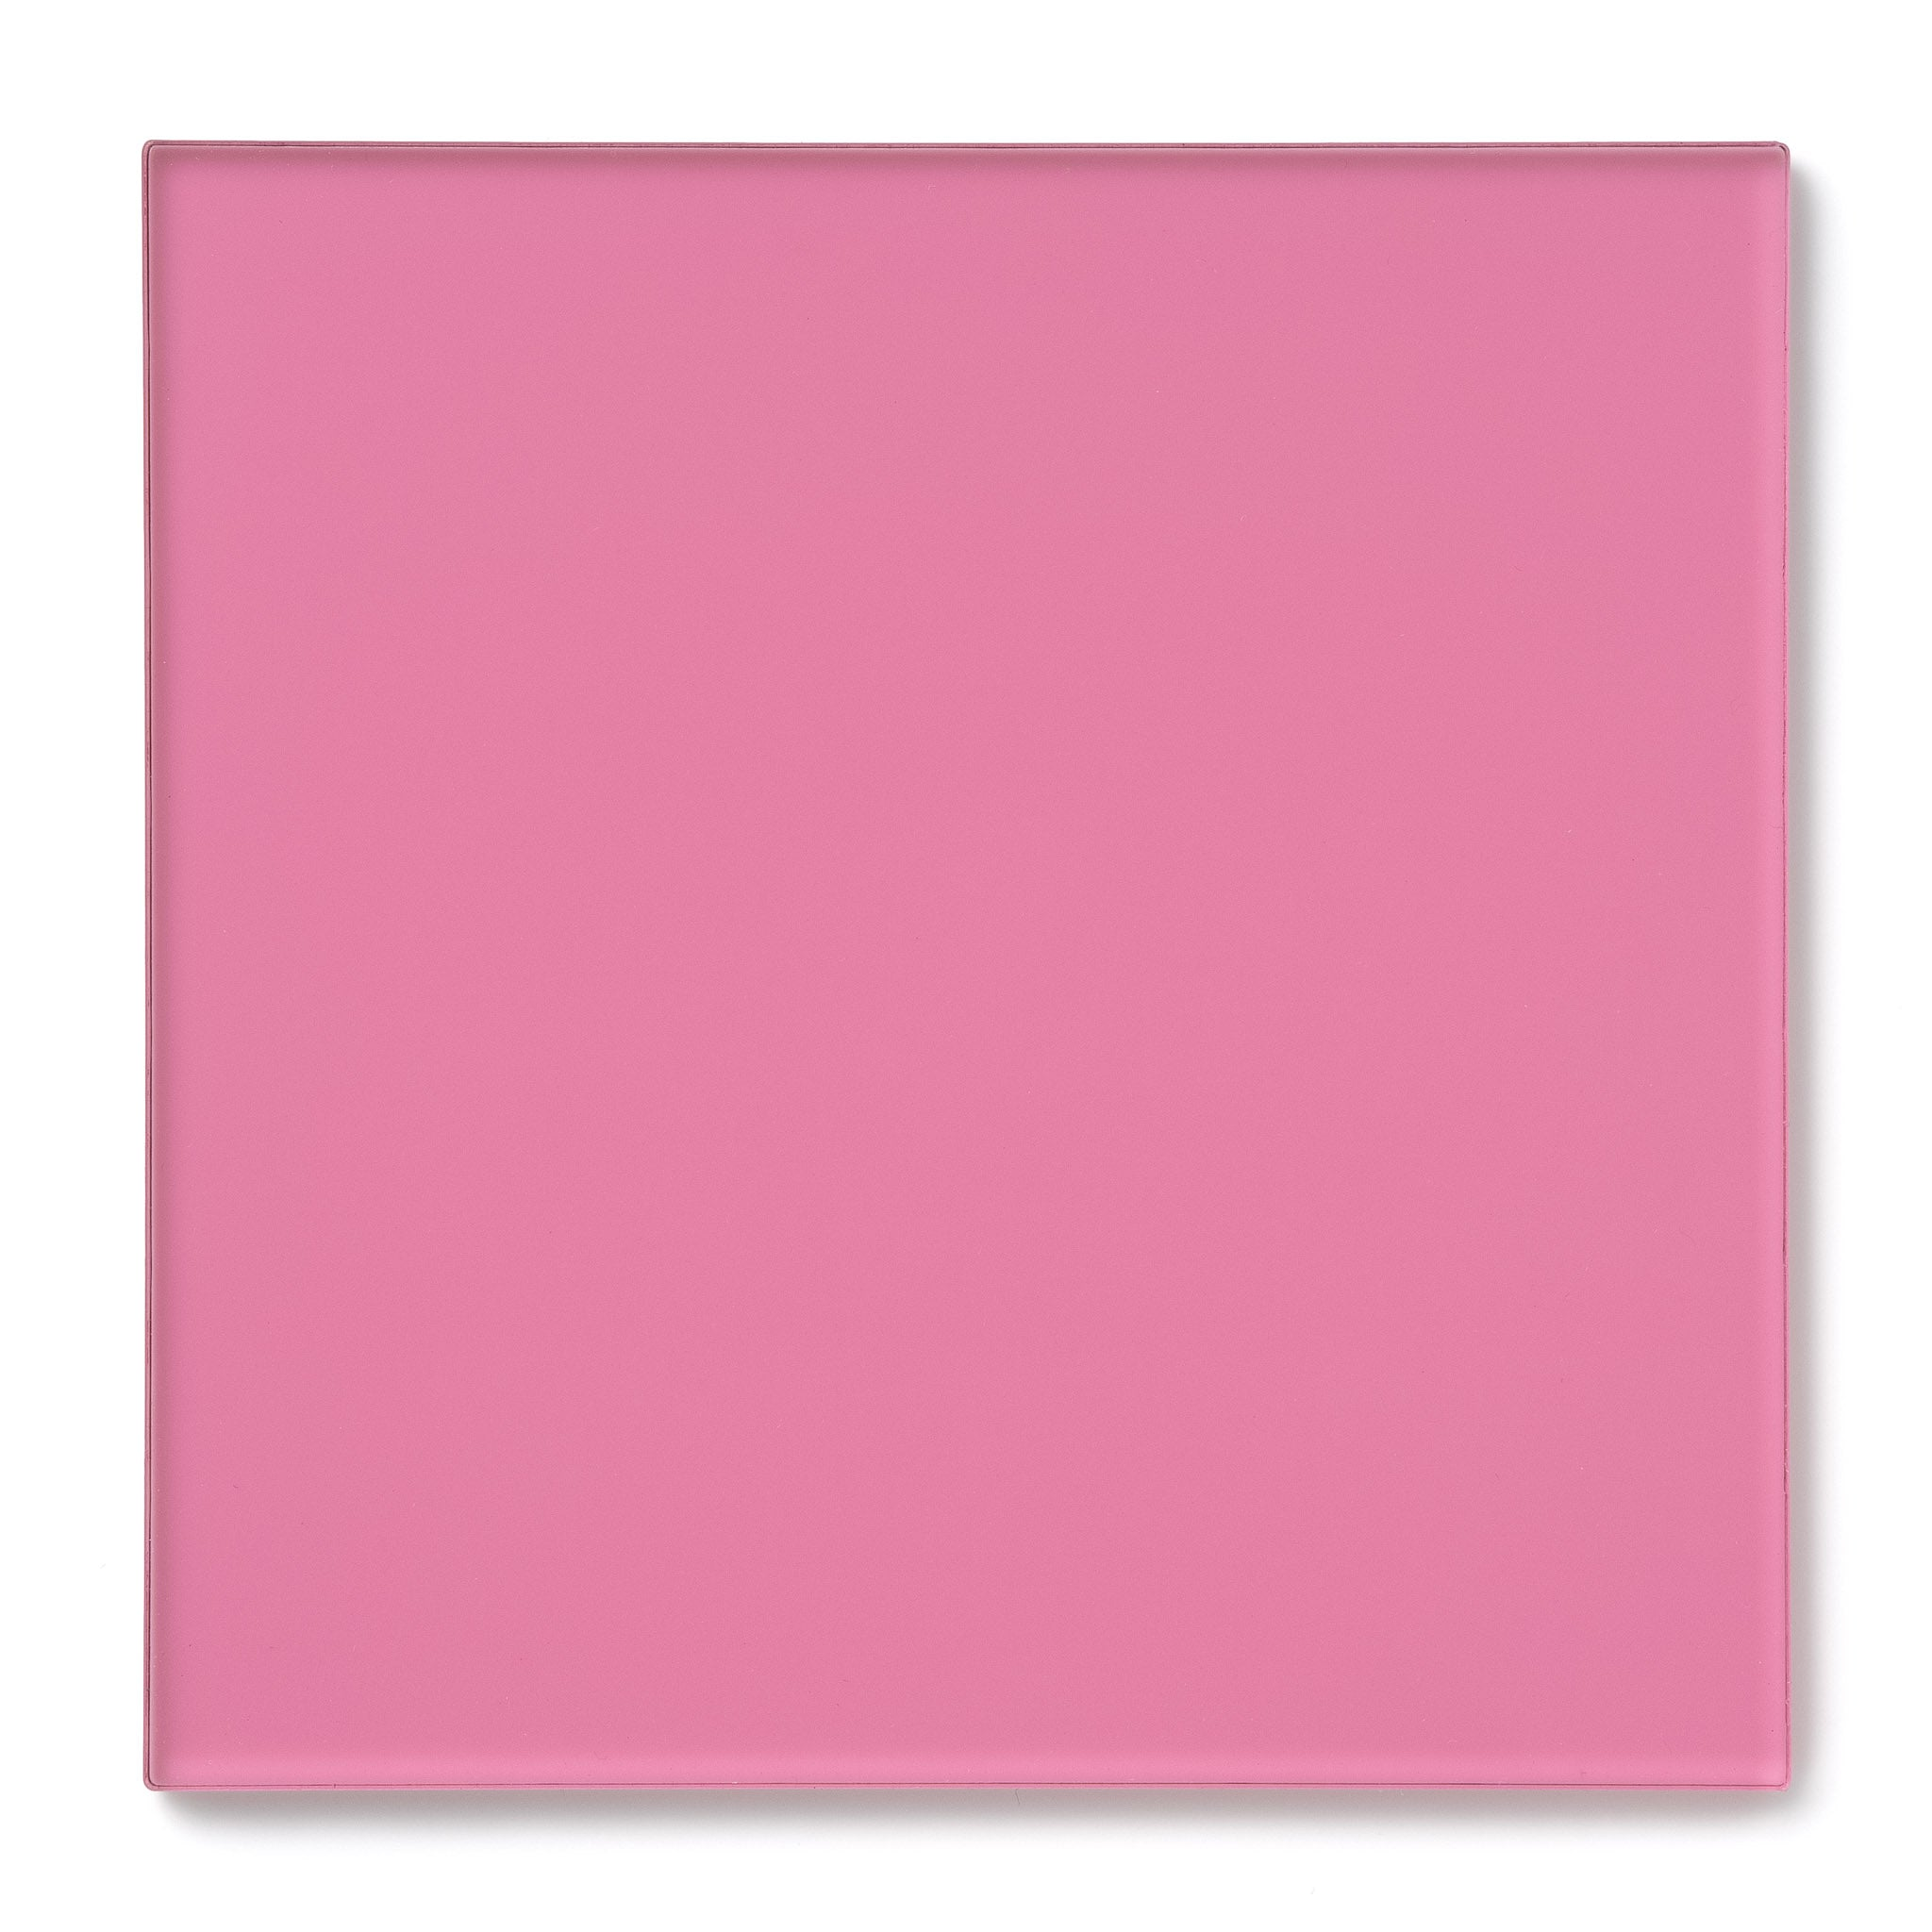 Pink Transparent Acrylic Plexiglass Sheet, 1450